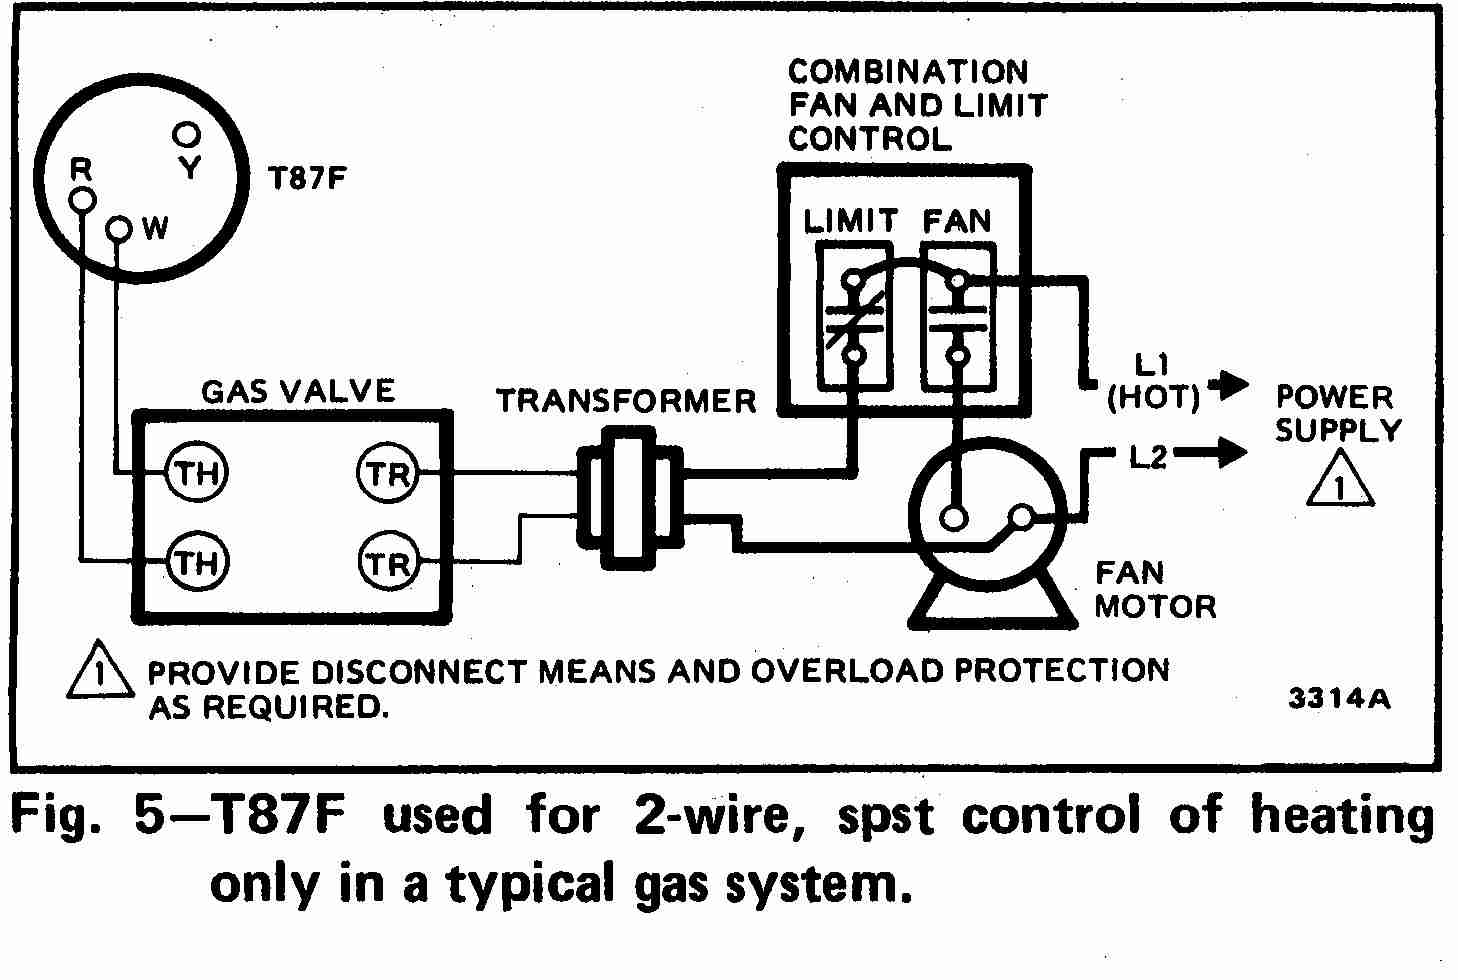 Room thermostat wiring diagrams for hvac systems honeywell t87f thermostat wiring diagram for 2 wire spst control of heating only in asfbconference2016 Gallery